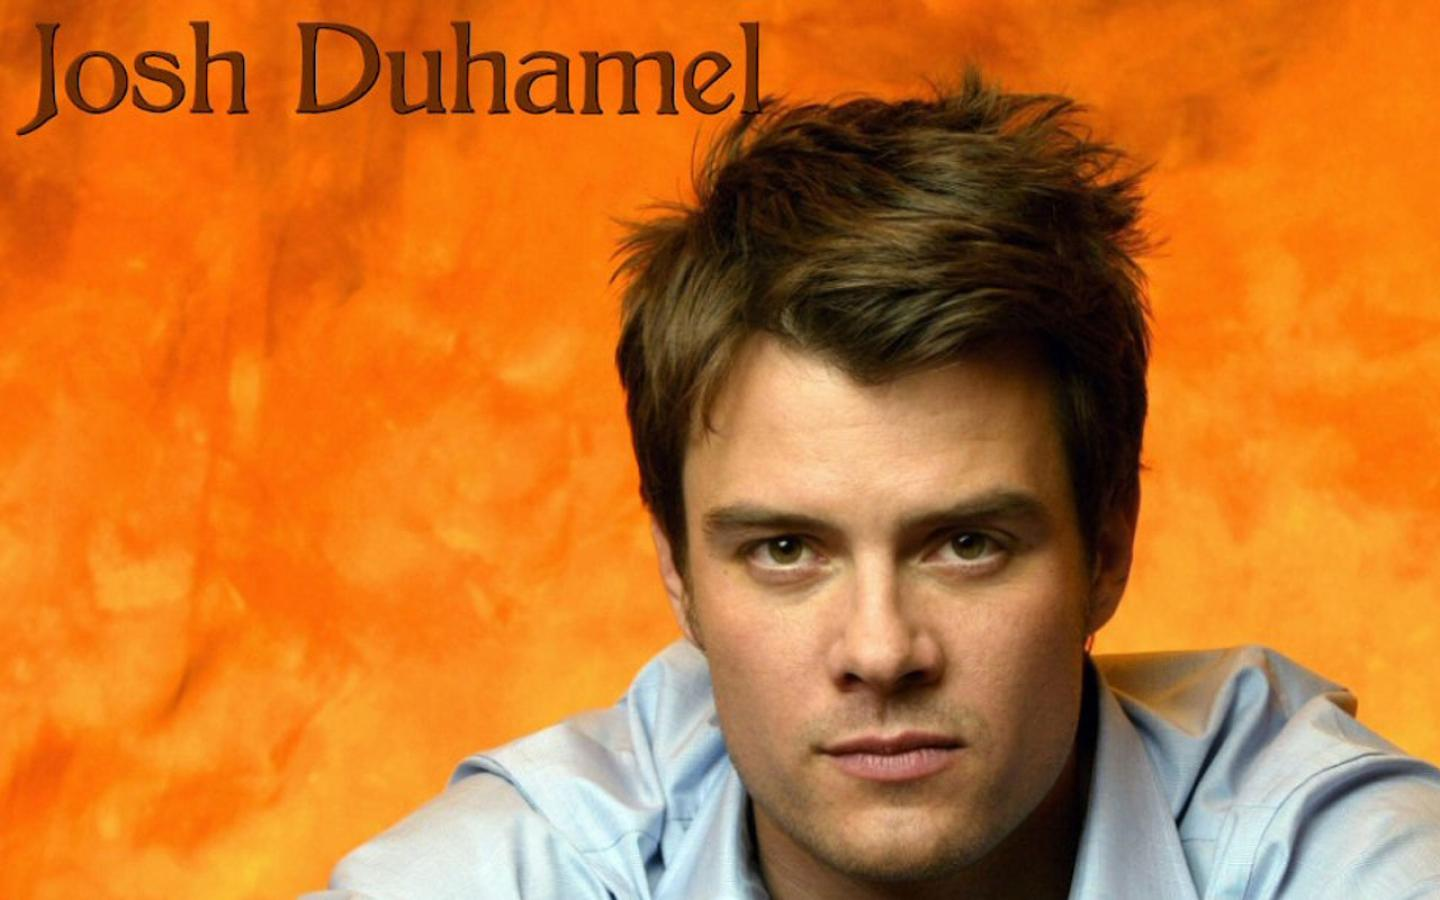 Josh Duhamel Wallpaper #2 1440 x 900